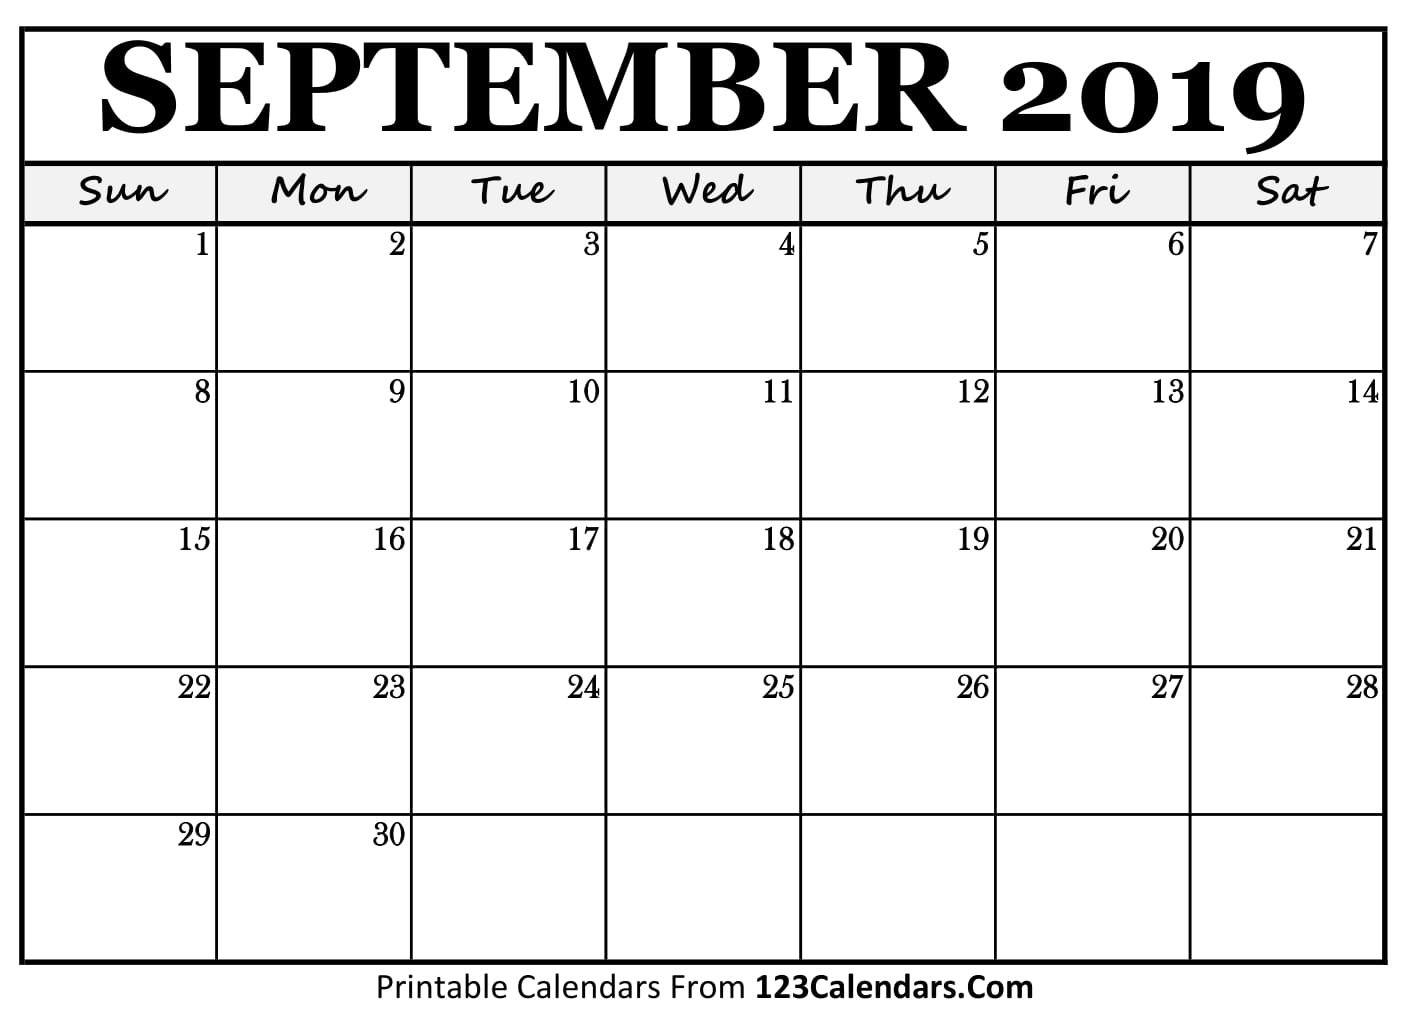 graphic regarding September Printable Calendar titled September 2019 Printable Calendar